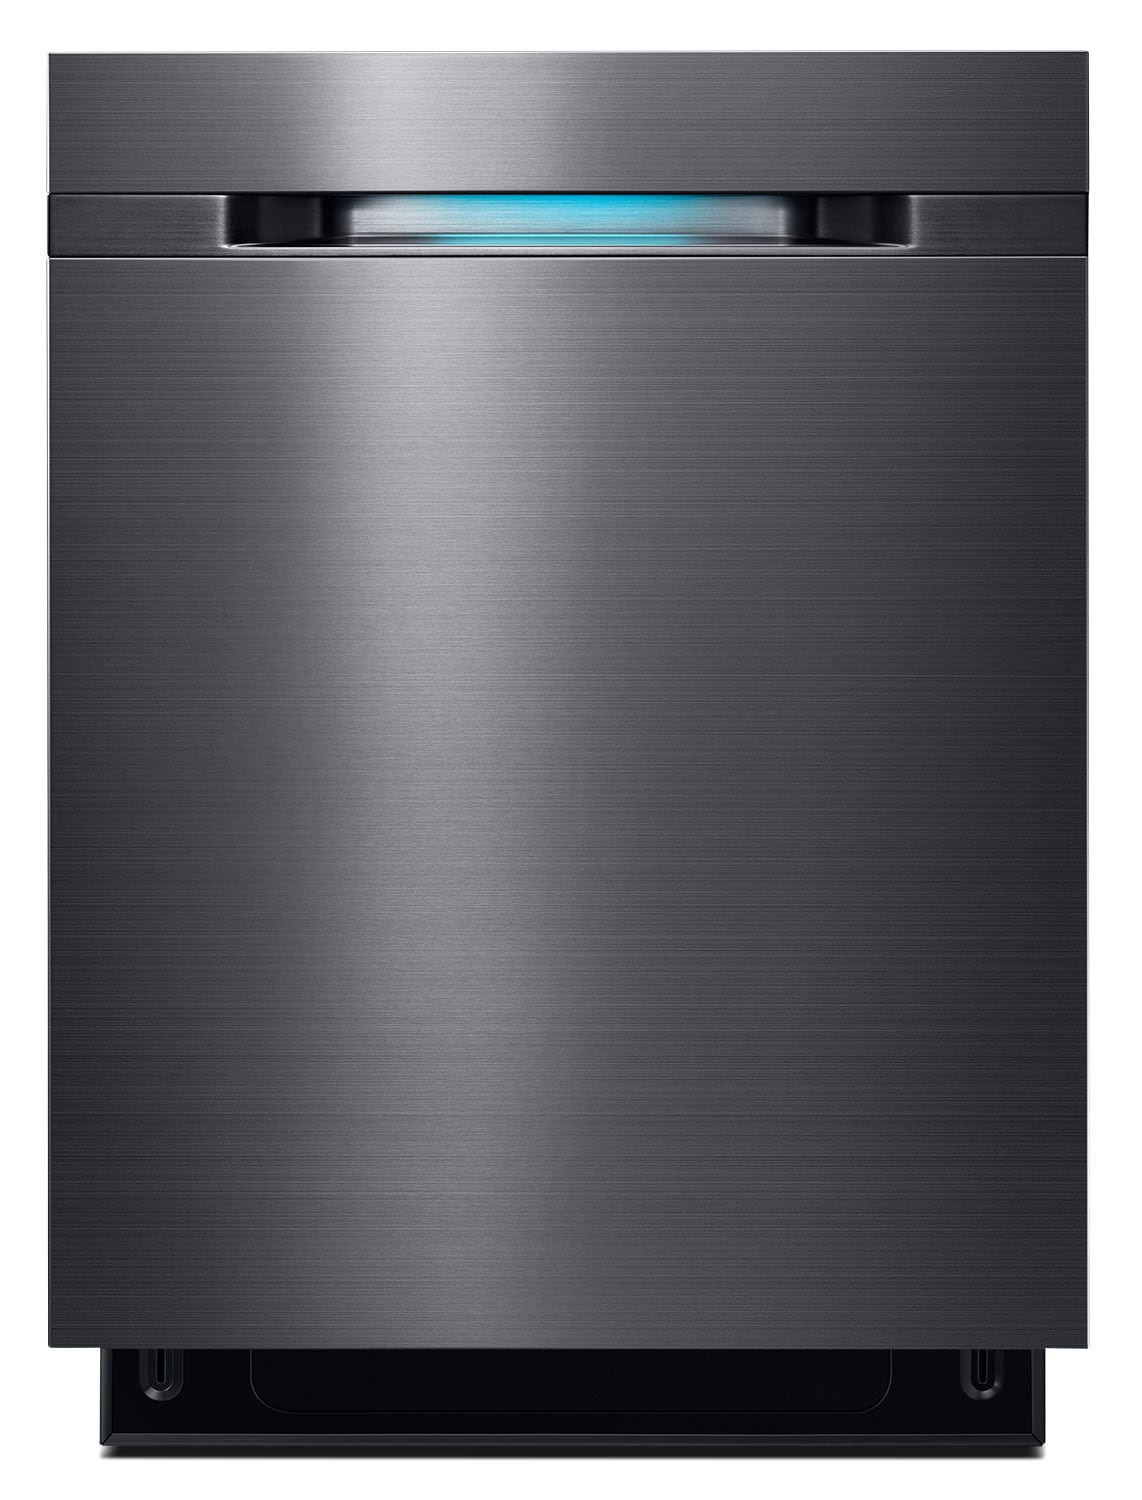 "Samsung 24"" Built-In Dishwasher – Black Stainless Steel DW80J7550UG/AC"